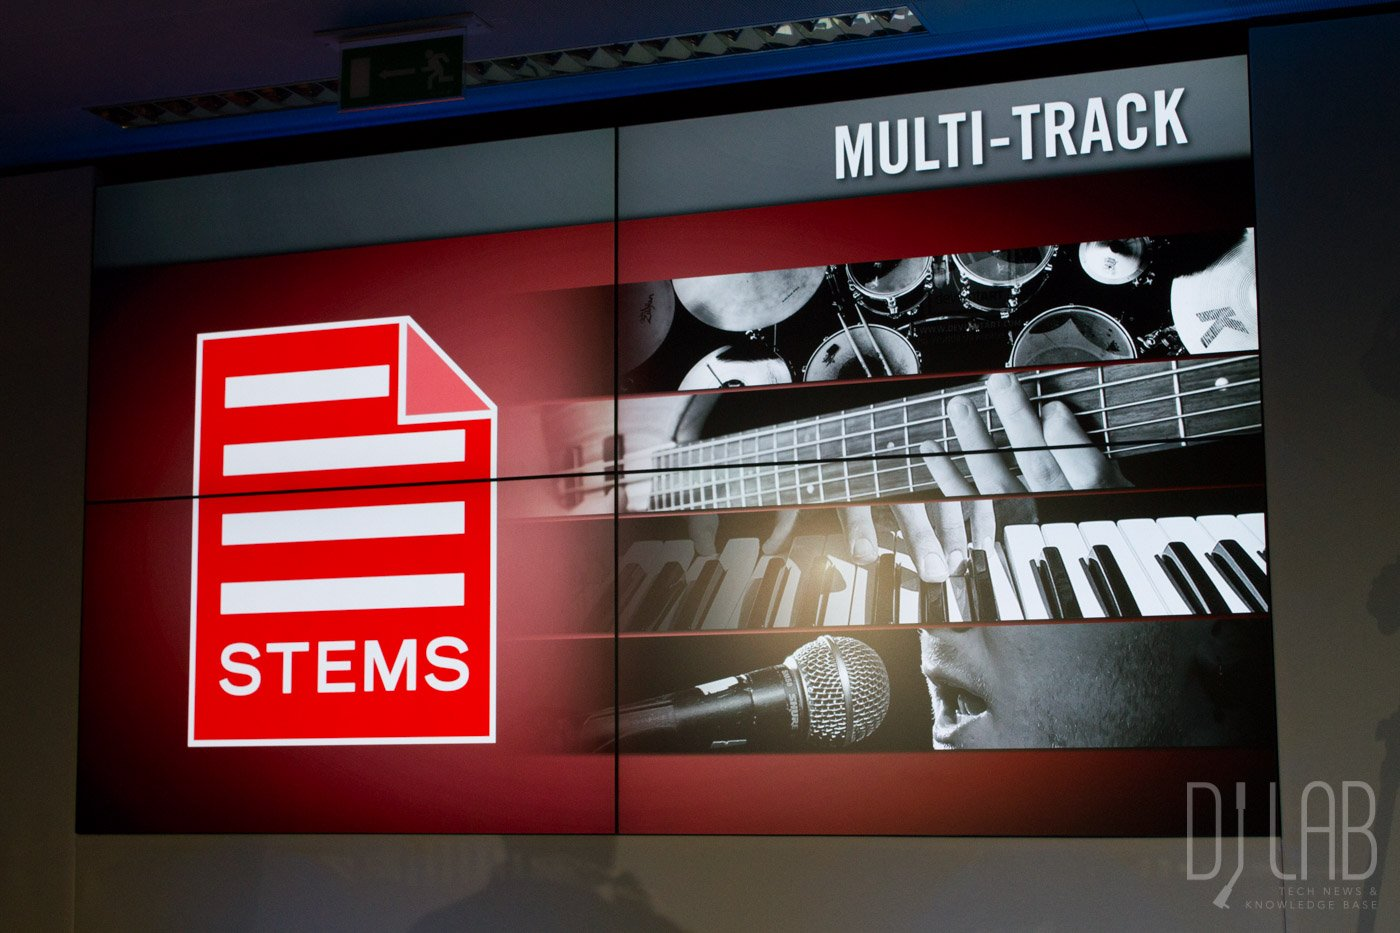 STEMS Demonstration, Musikmesse 2015